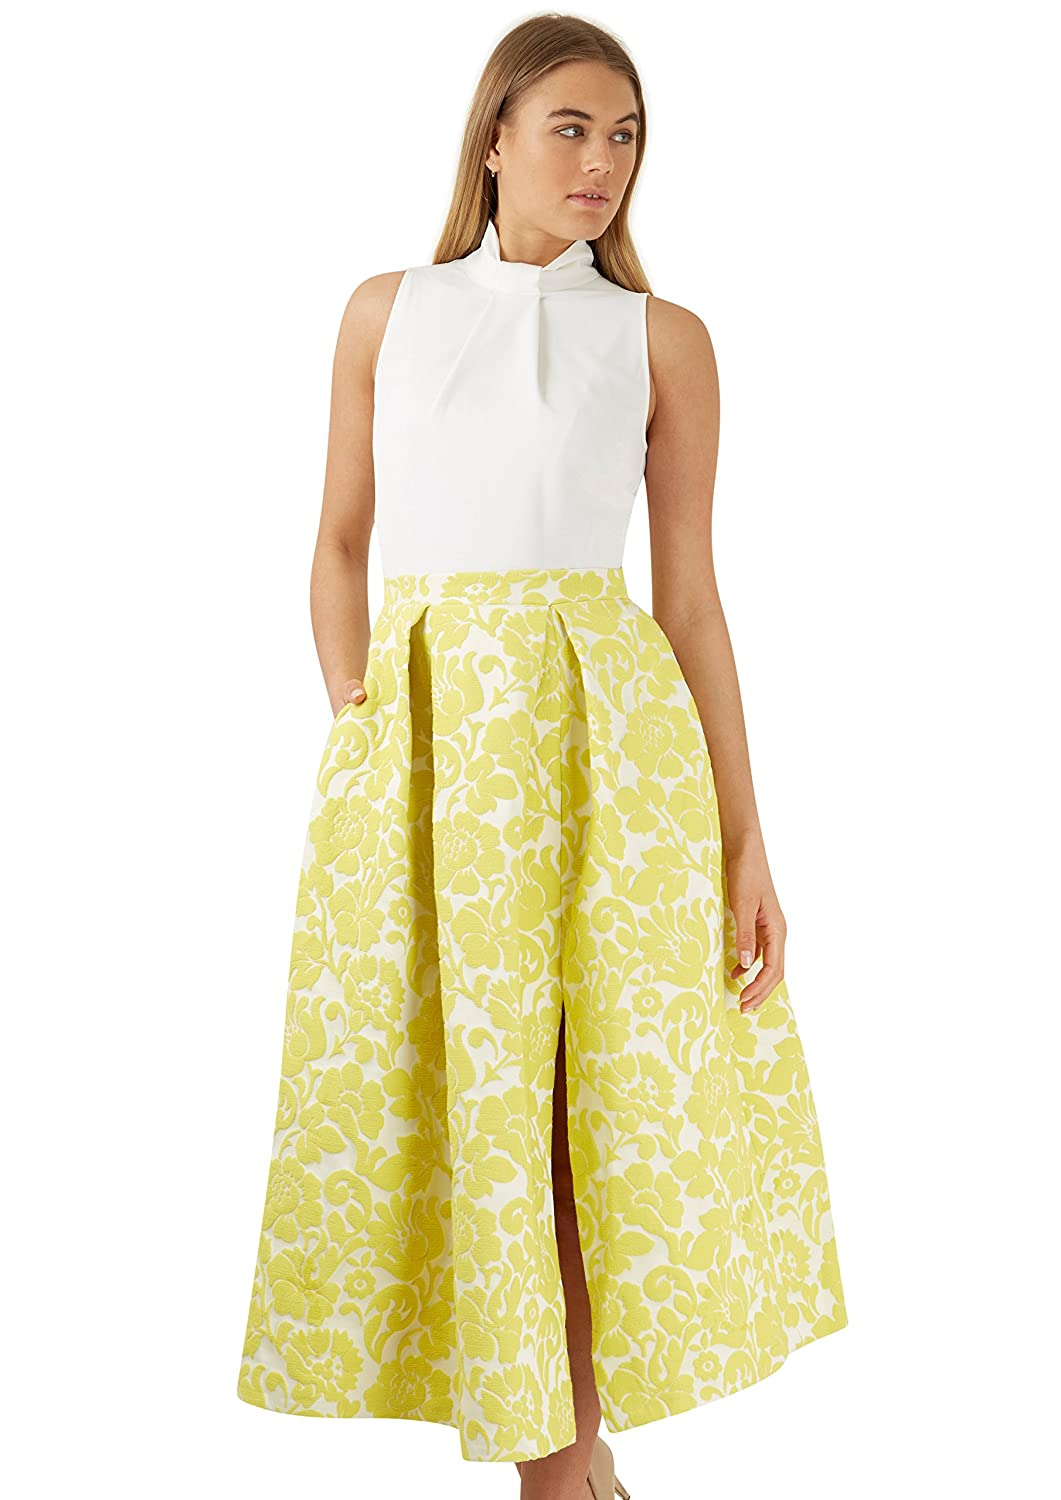 GOLD 2 in 1 Yellow Floral Jacquard Full Skirt Dress